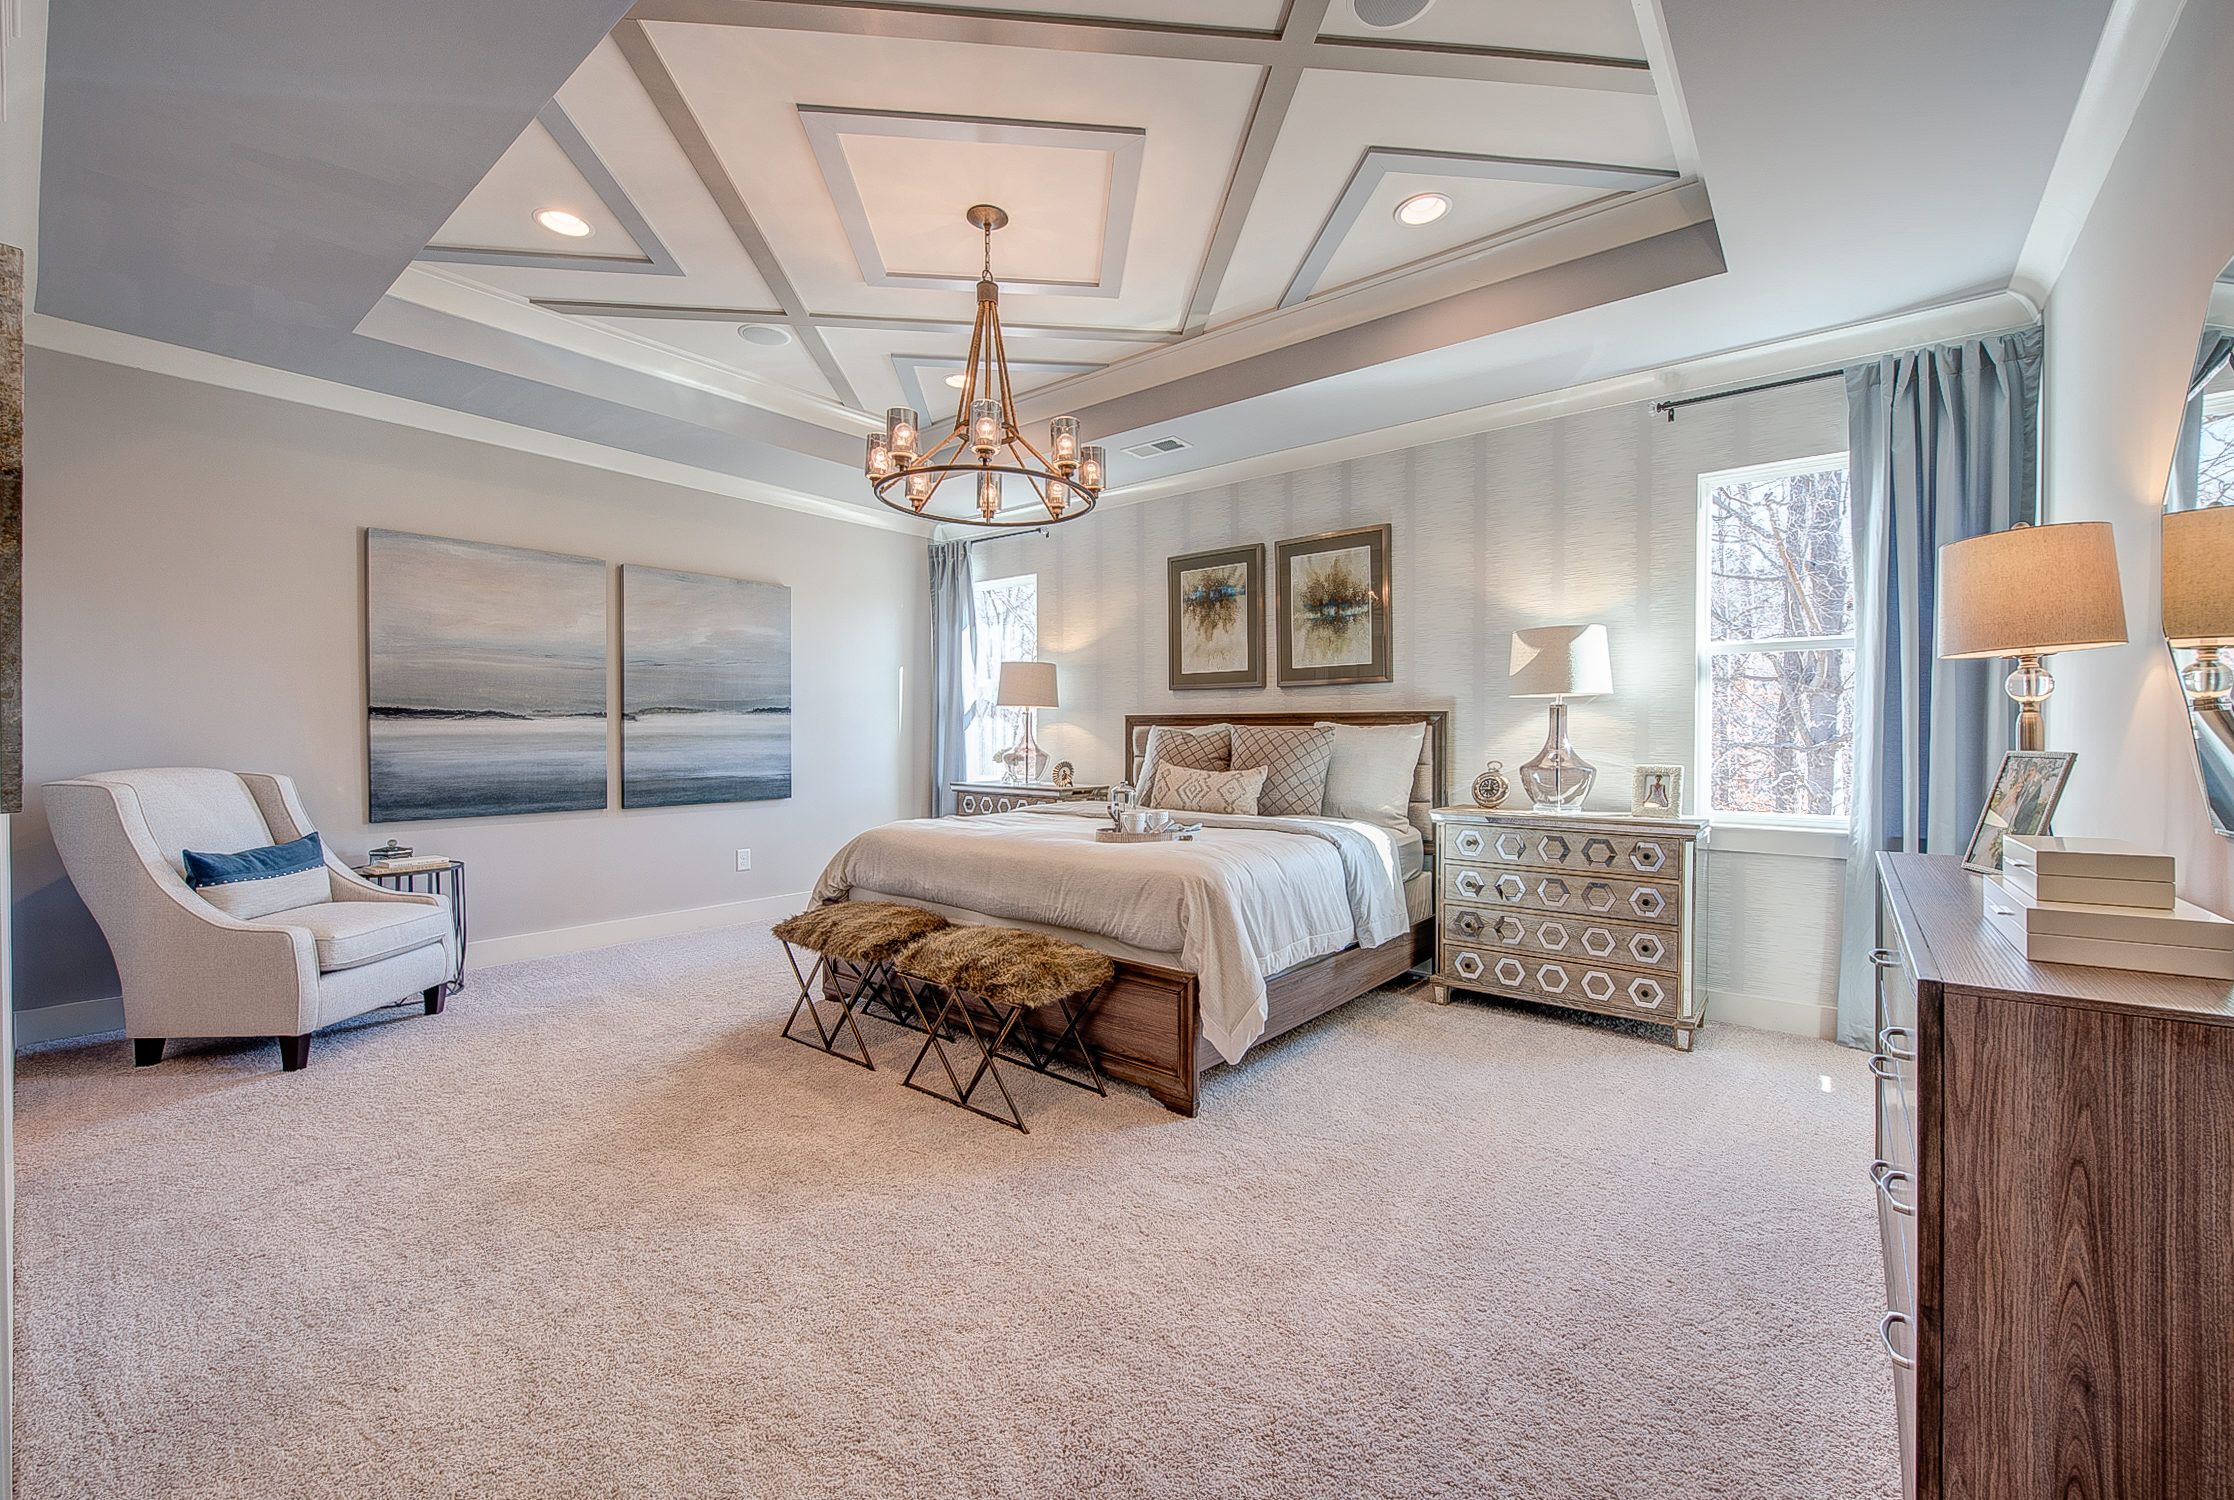 104-bushney-loop-mooresville-print-024-42-owners-bedroom-2234x1500-300dpi_33373102740_o.jpg